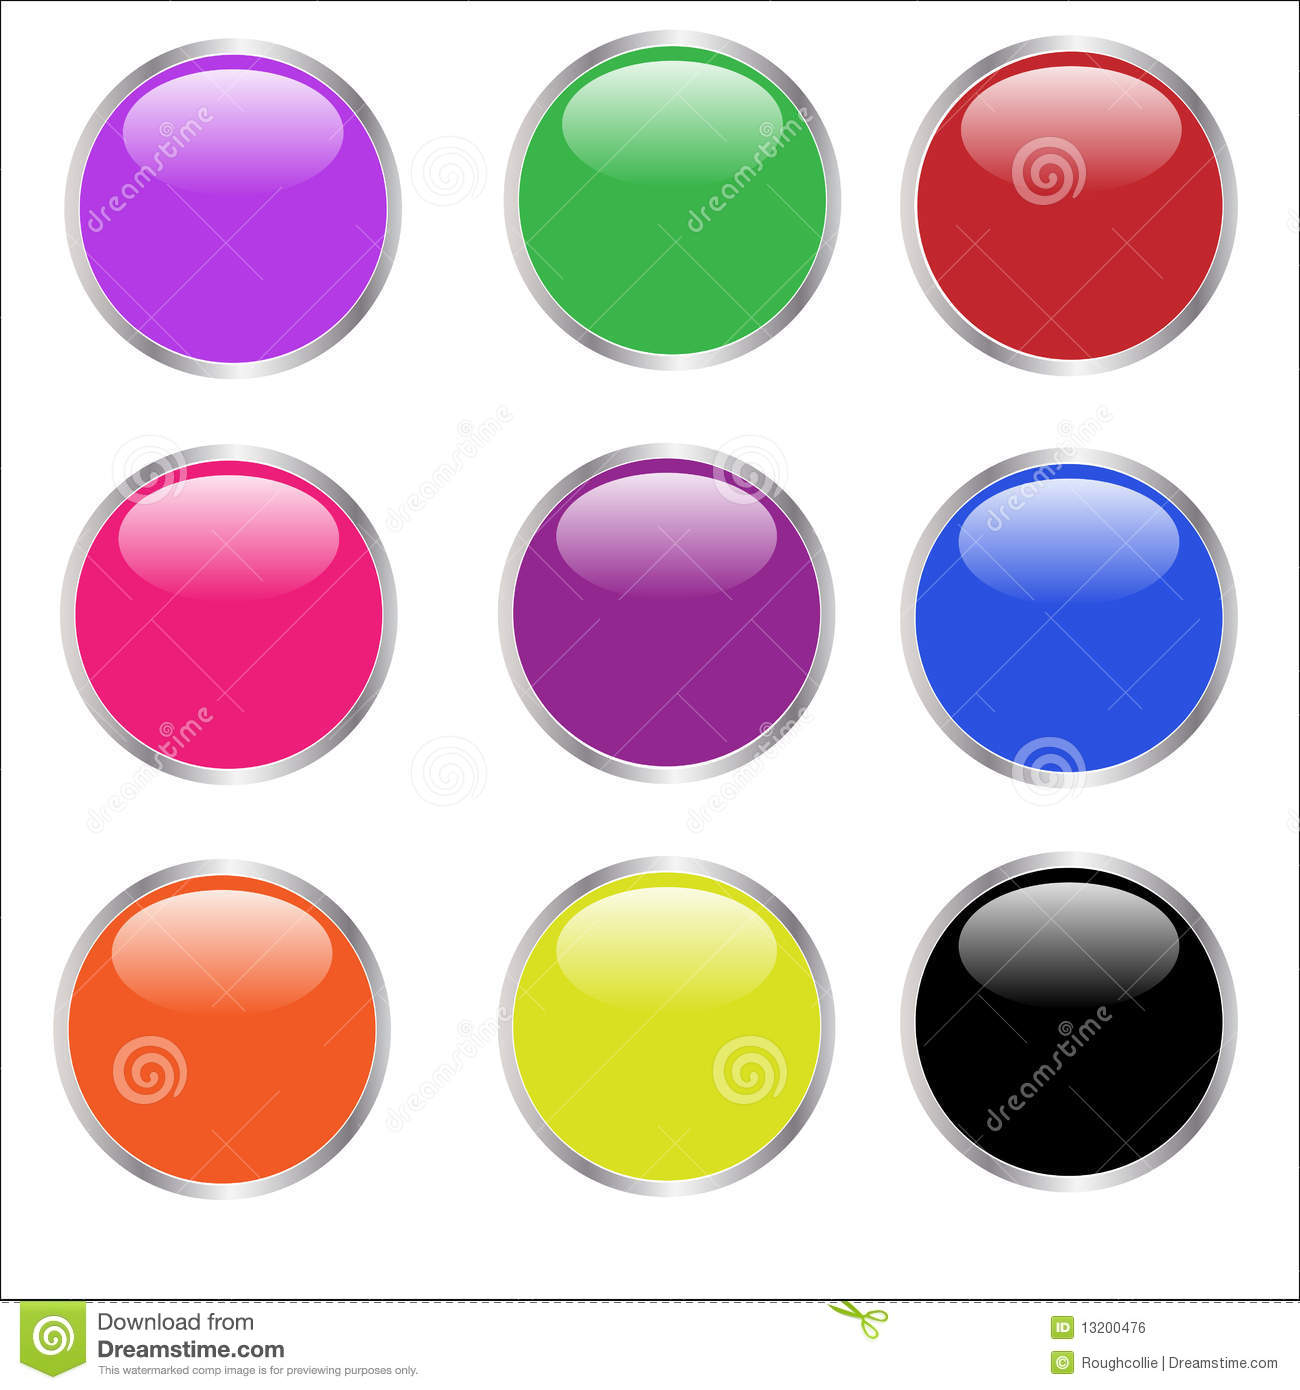 Web Buttons - glossy